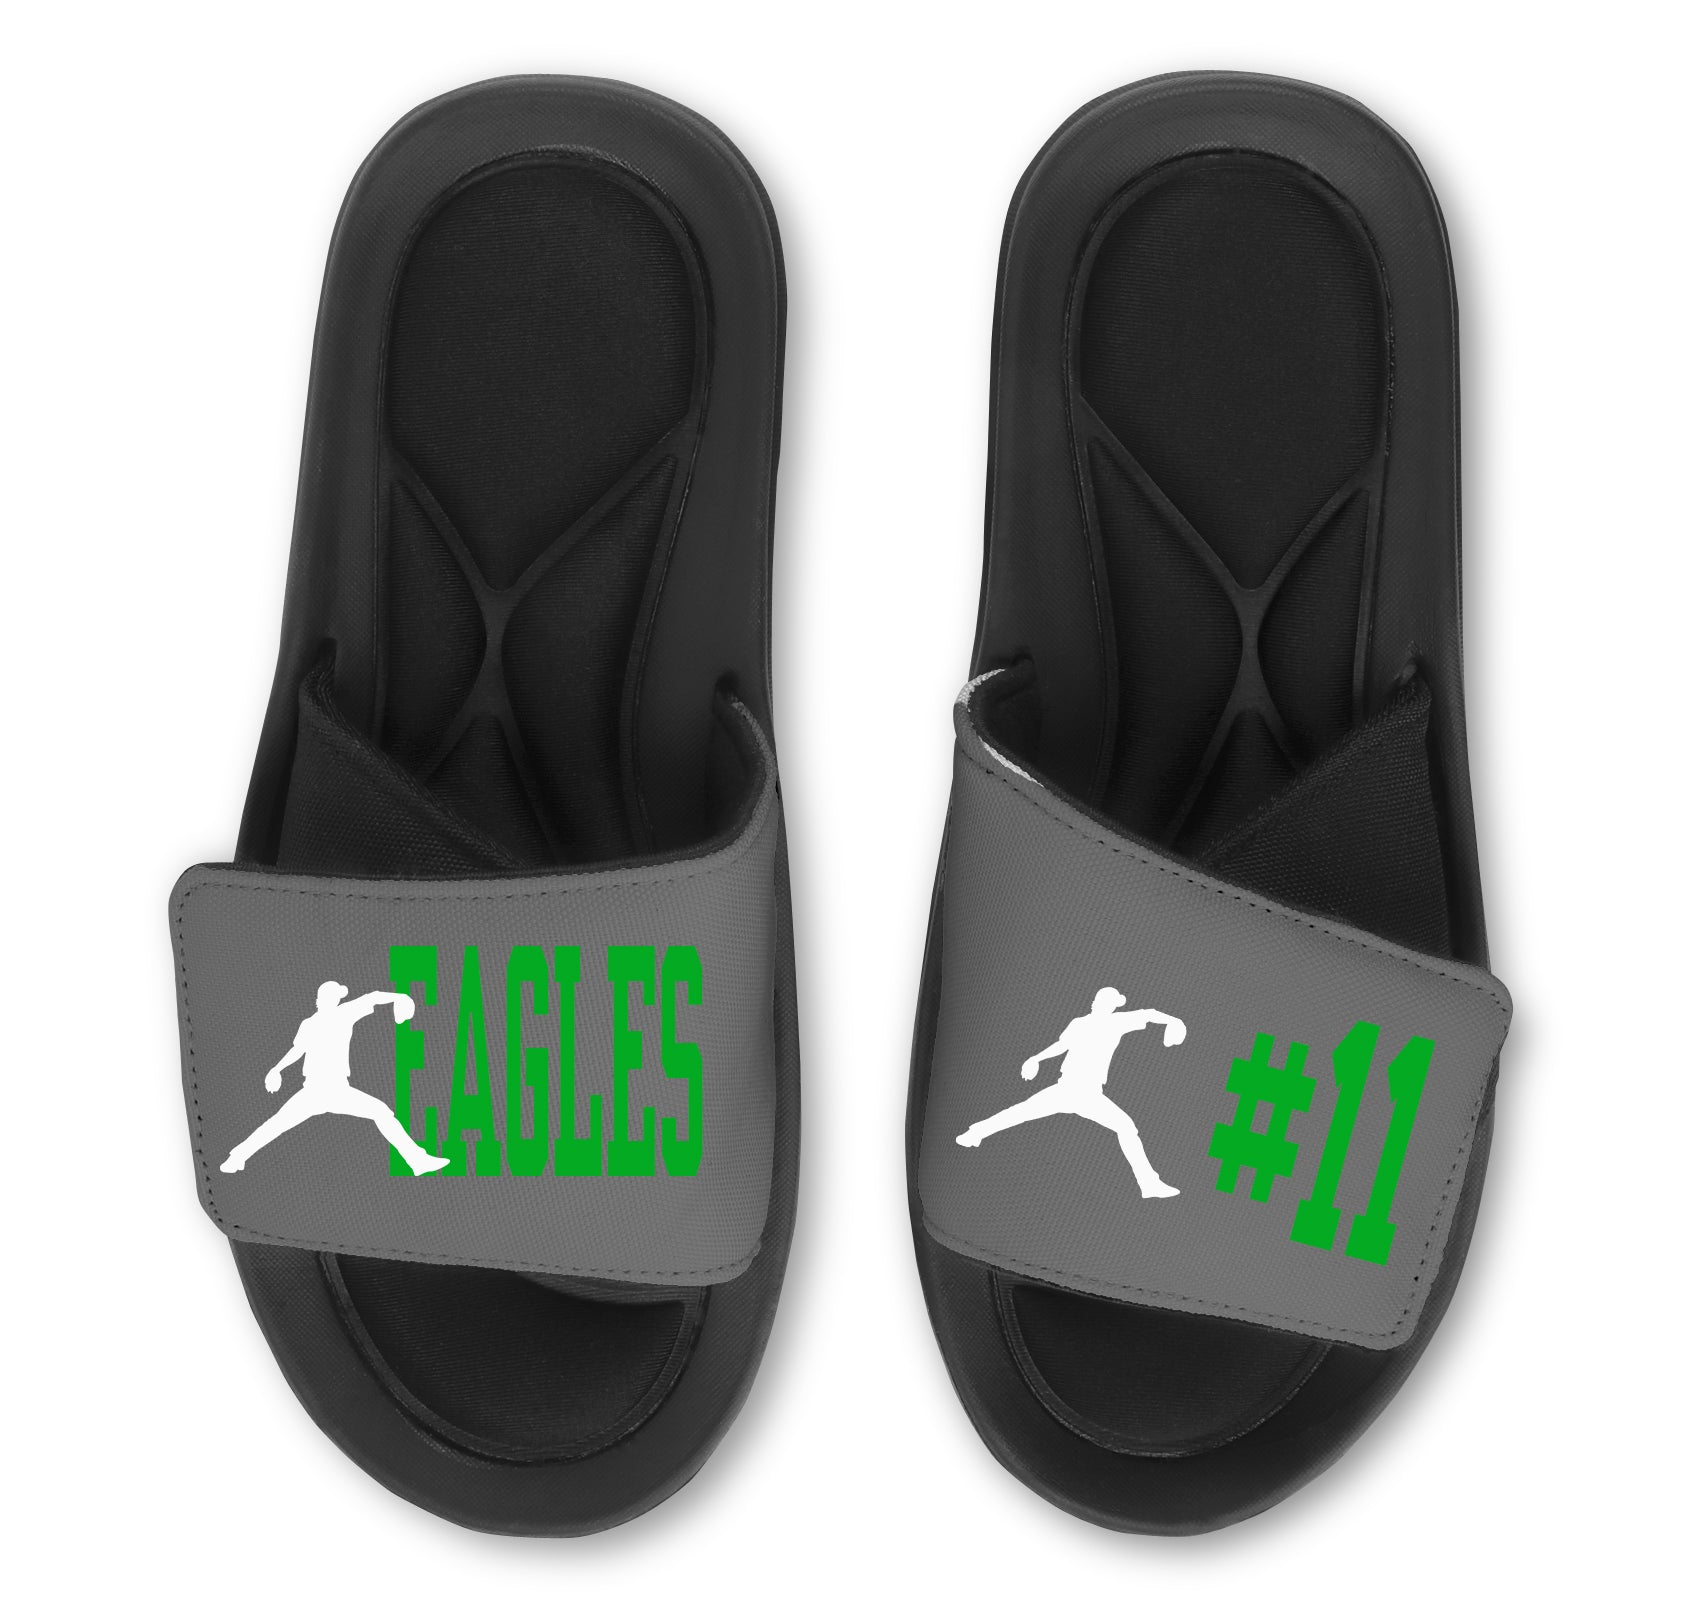 Baseball Custom Slides / Sandals - Choose Your Colors